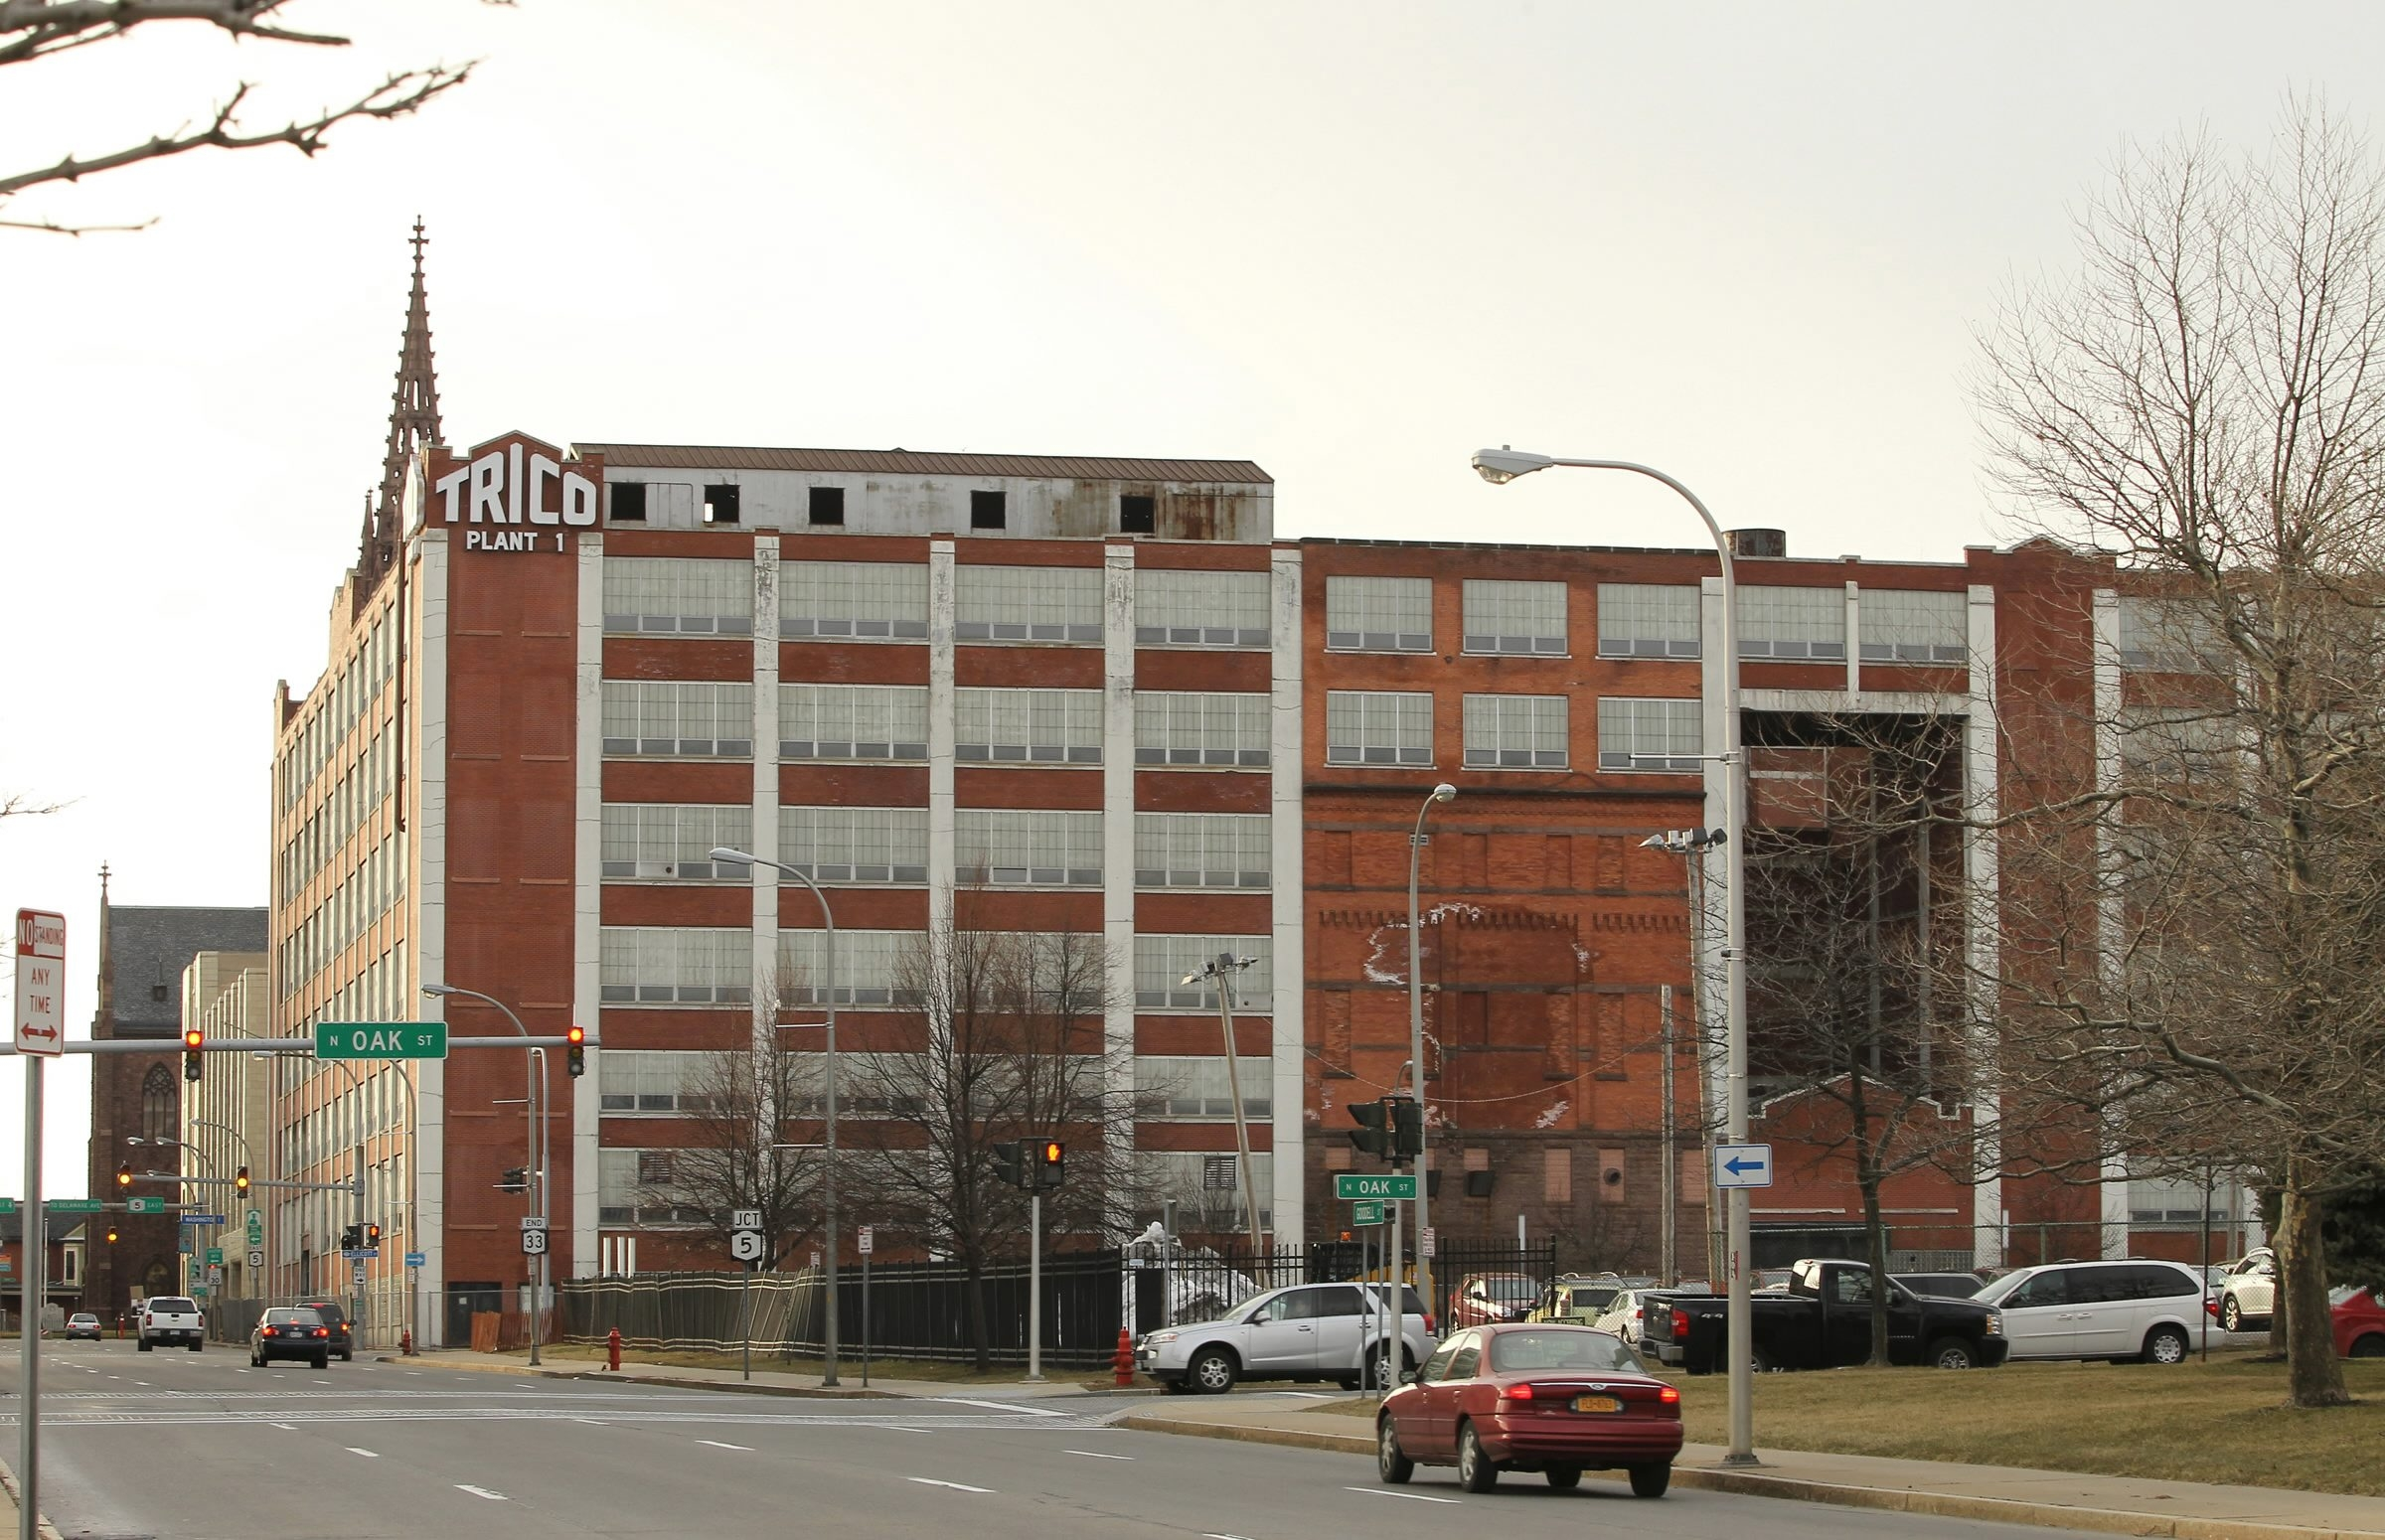 The iconic Trico plant is about to get a new lease on life.